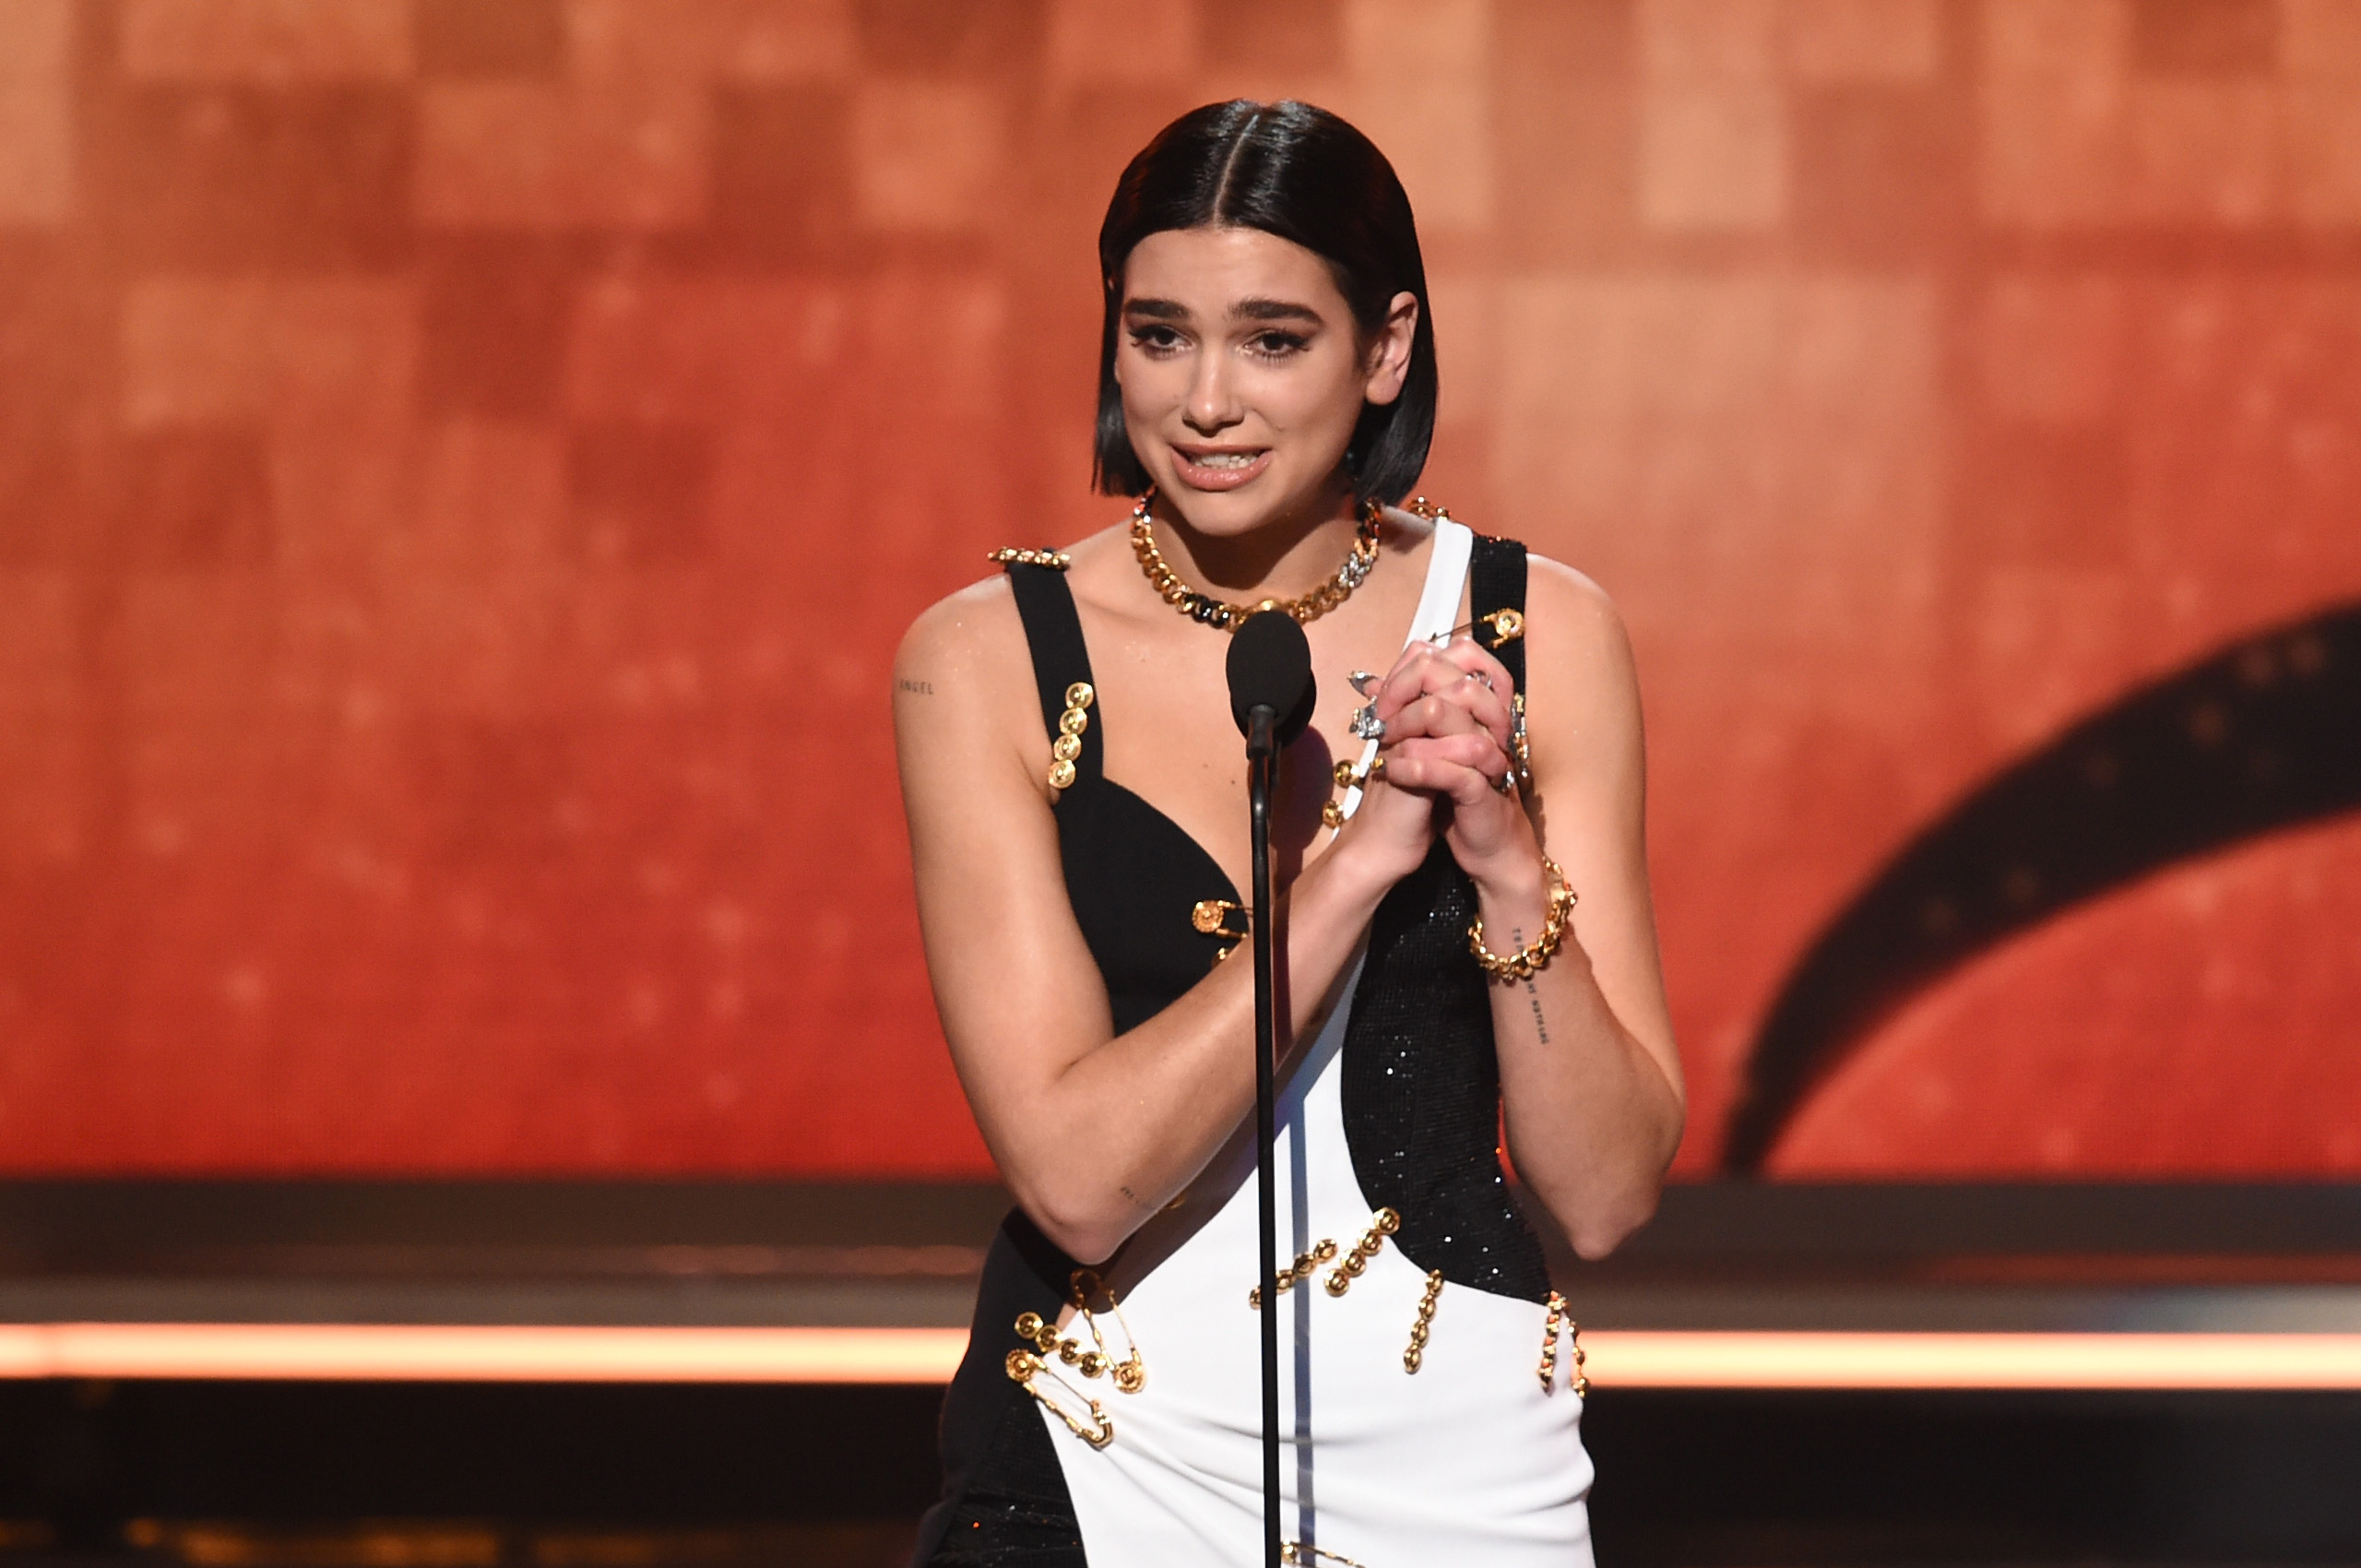 Grammys 2019 Best New Artist Dua Lipa talks Ariana Grande missing the show, 21 Savage being arrested by ICE